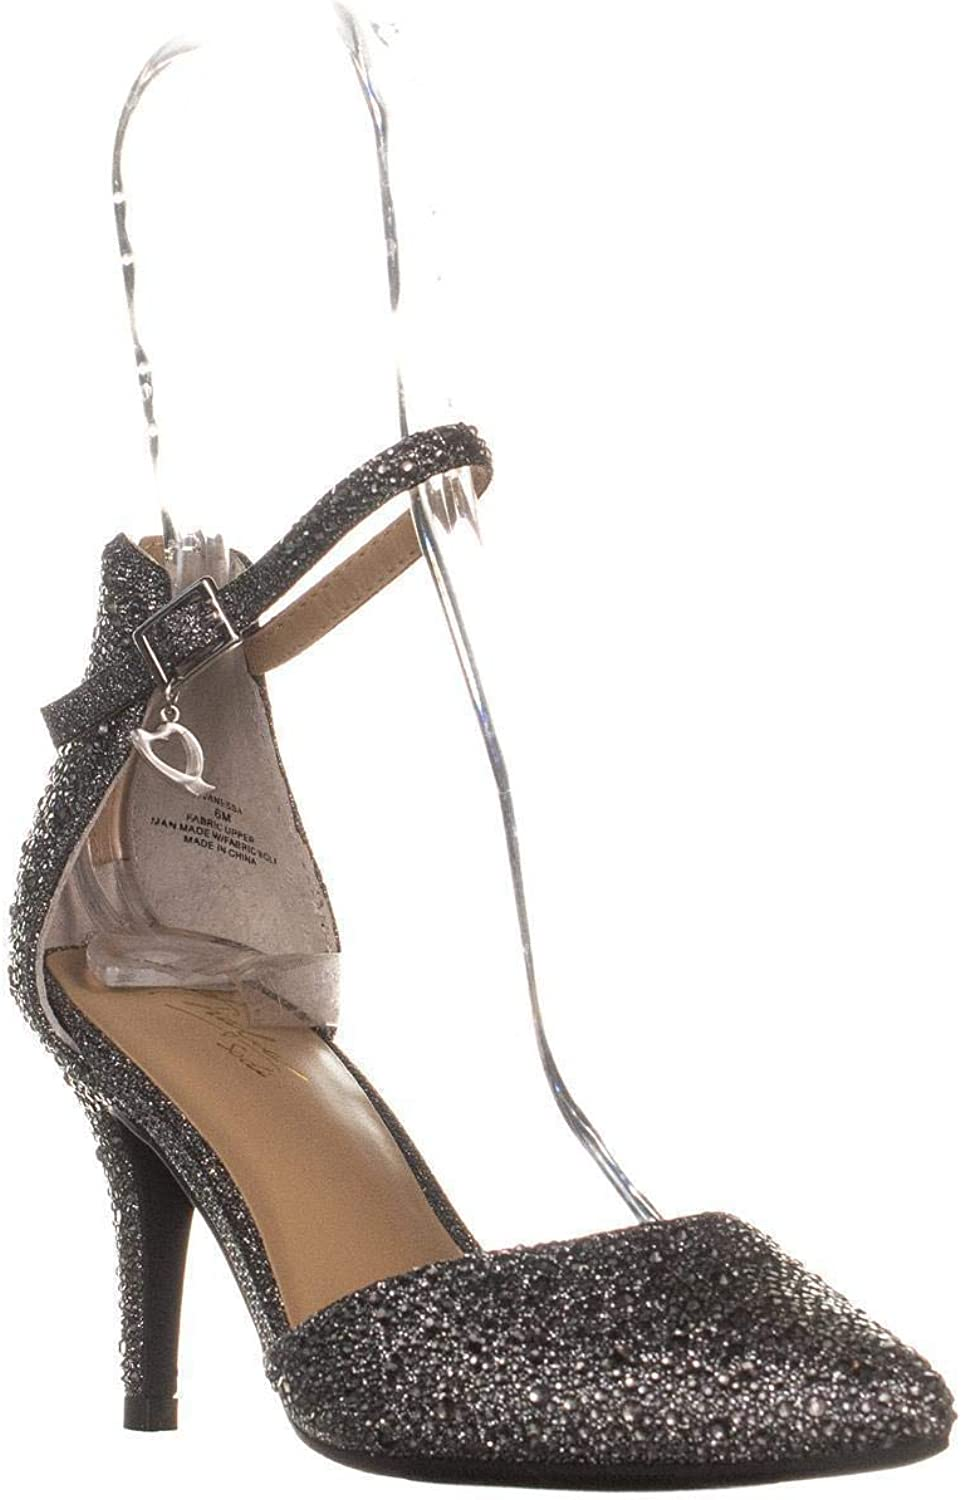 Thalia Ts35 Vanessa Ankle Strap Pumps, Pewter Metallic